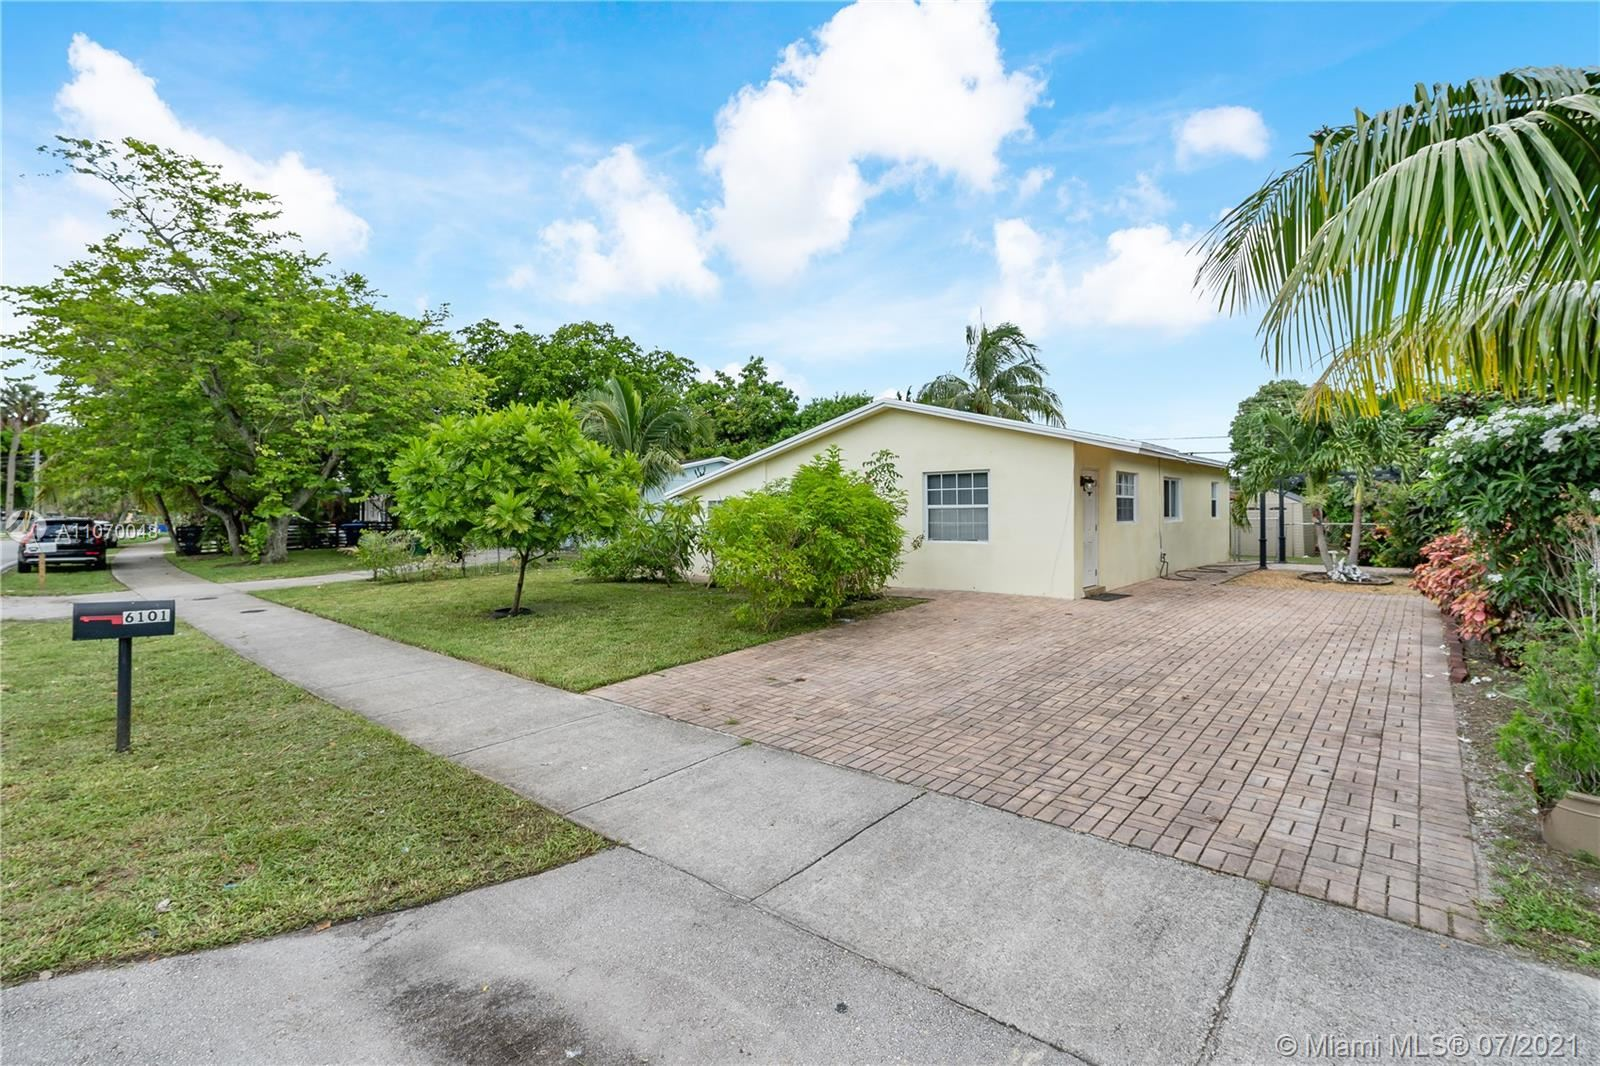 Photo of 6101 NW 42nd Ave, North Lauderdale, FL 33319 (MLS # A11070048)